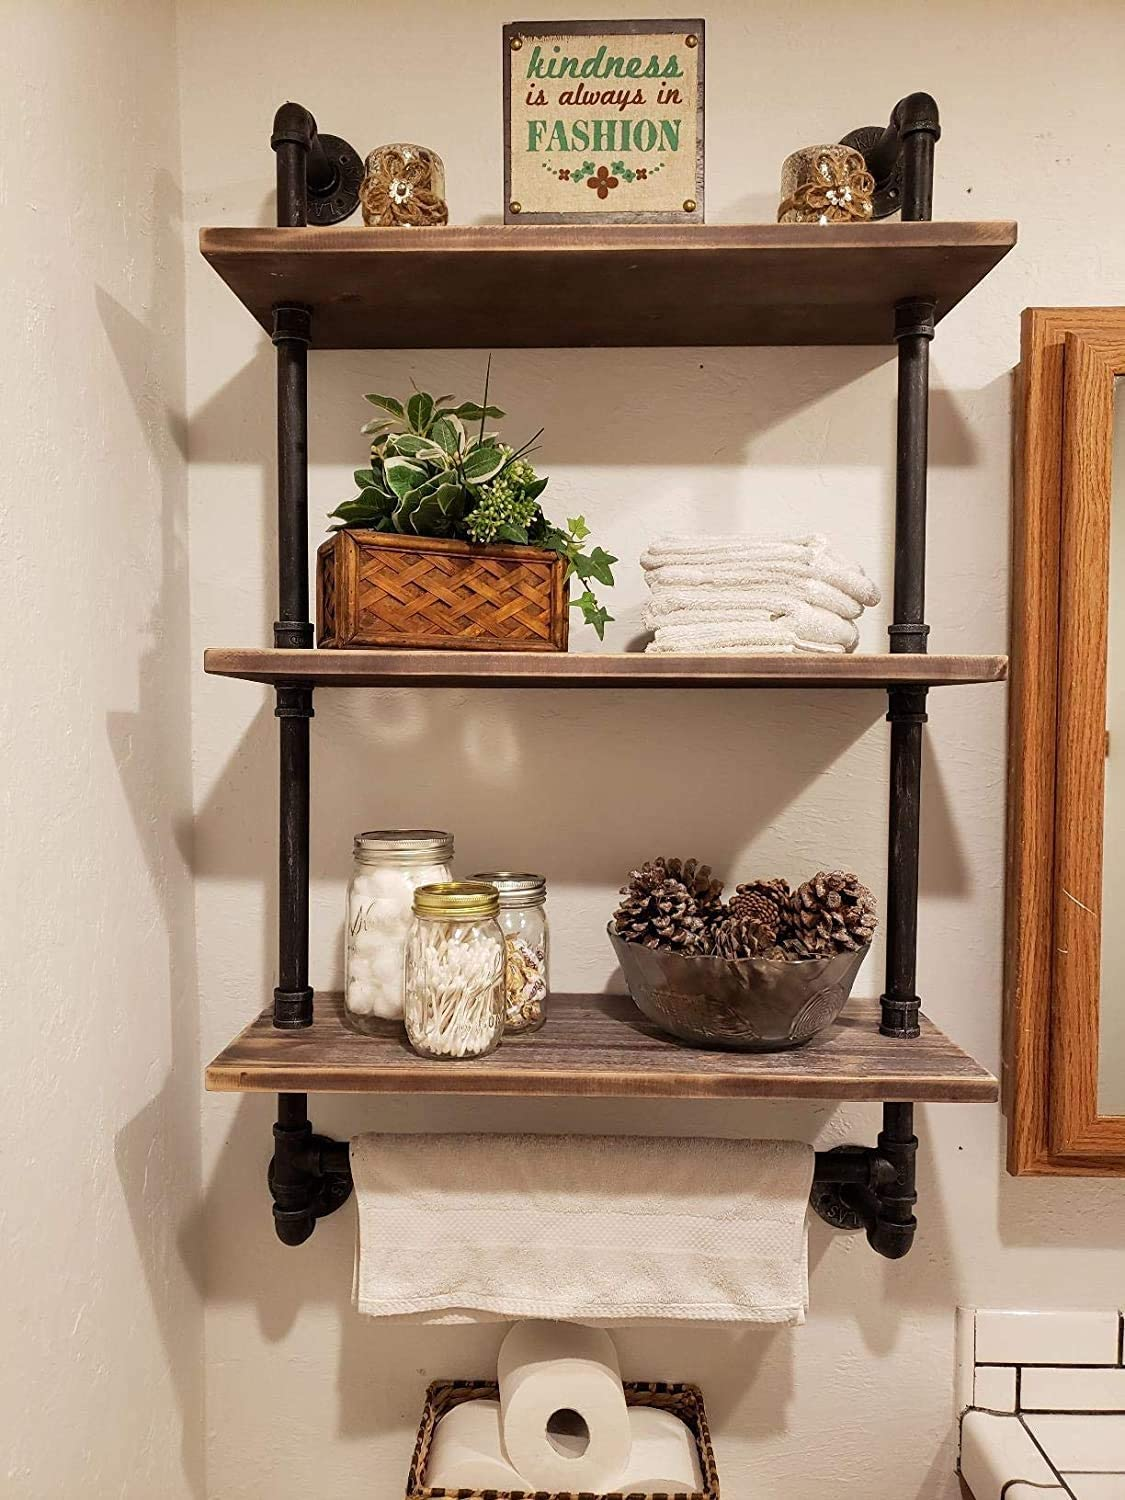 "Industrial Pipe Bathroom Shelf Rustic Wall Shelves with Towel Bar,24"" Towel Racks for Bathroom,Framhouse Floating Shelving Unit Storage (3 tier-24)"